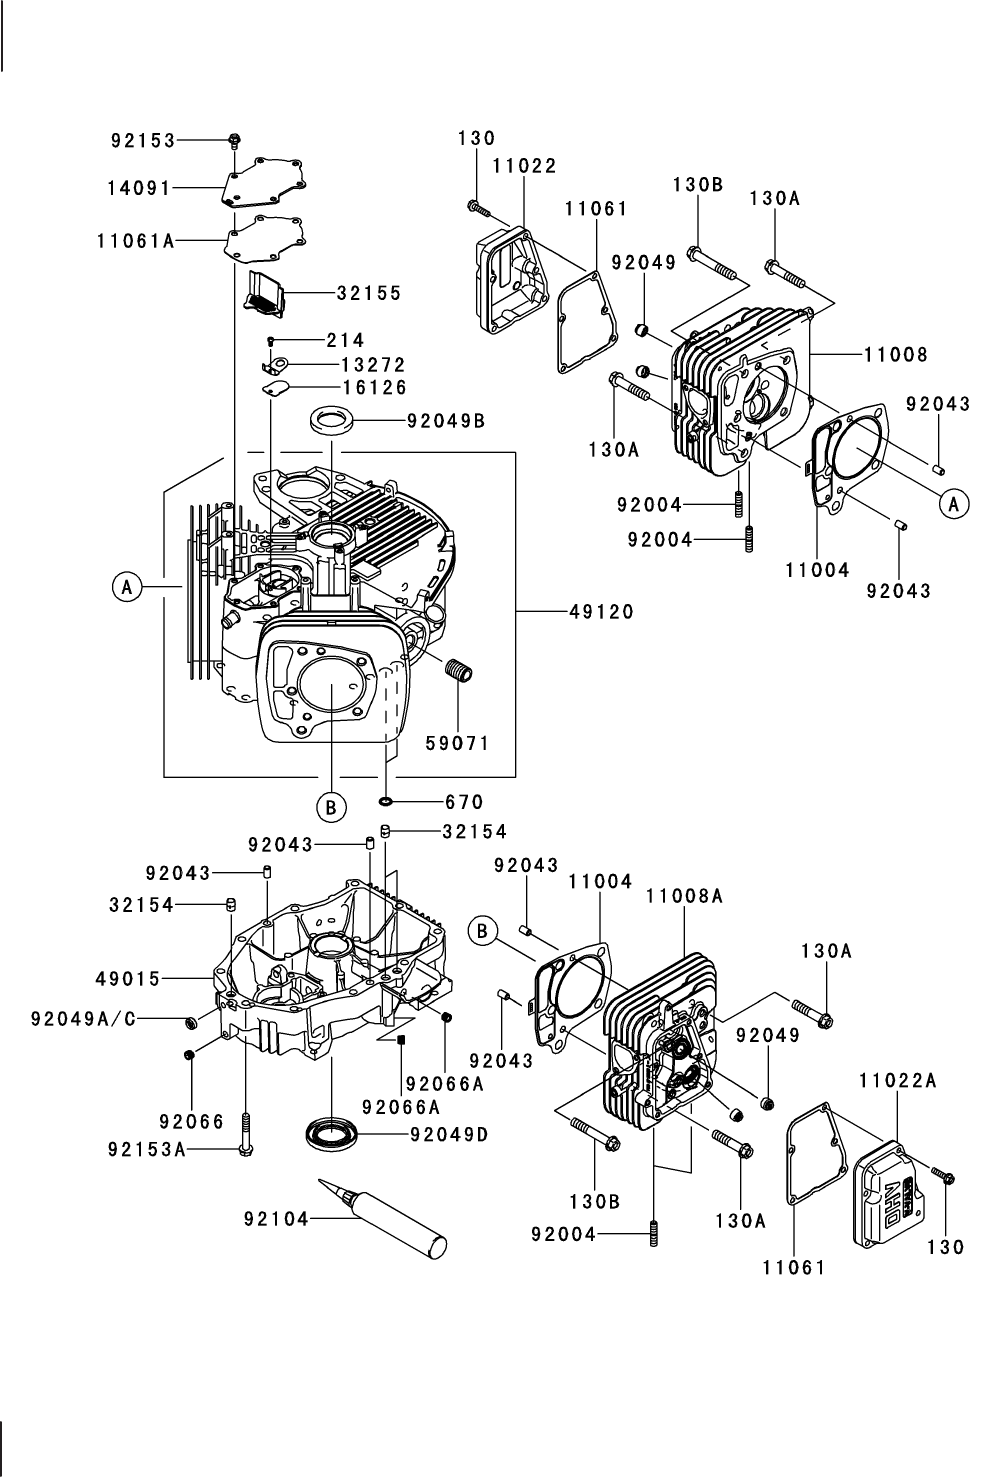 Page 46 of Cub Cadet Lawn Mower LTX1050/KW User Guide